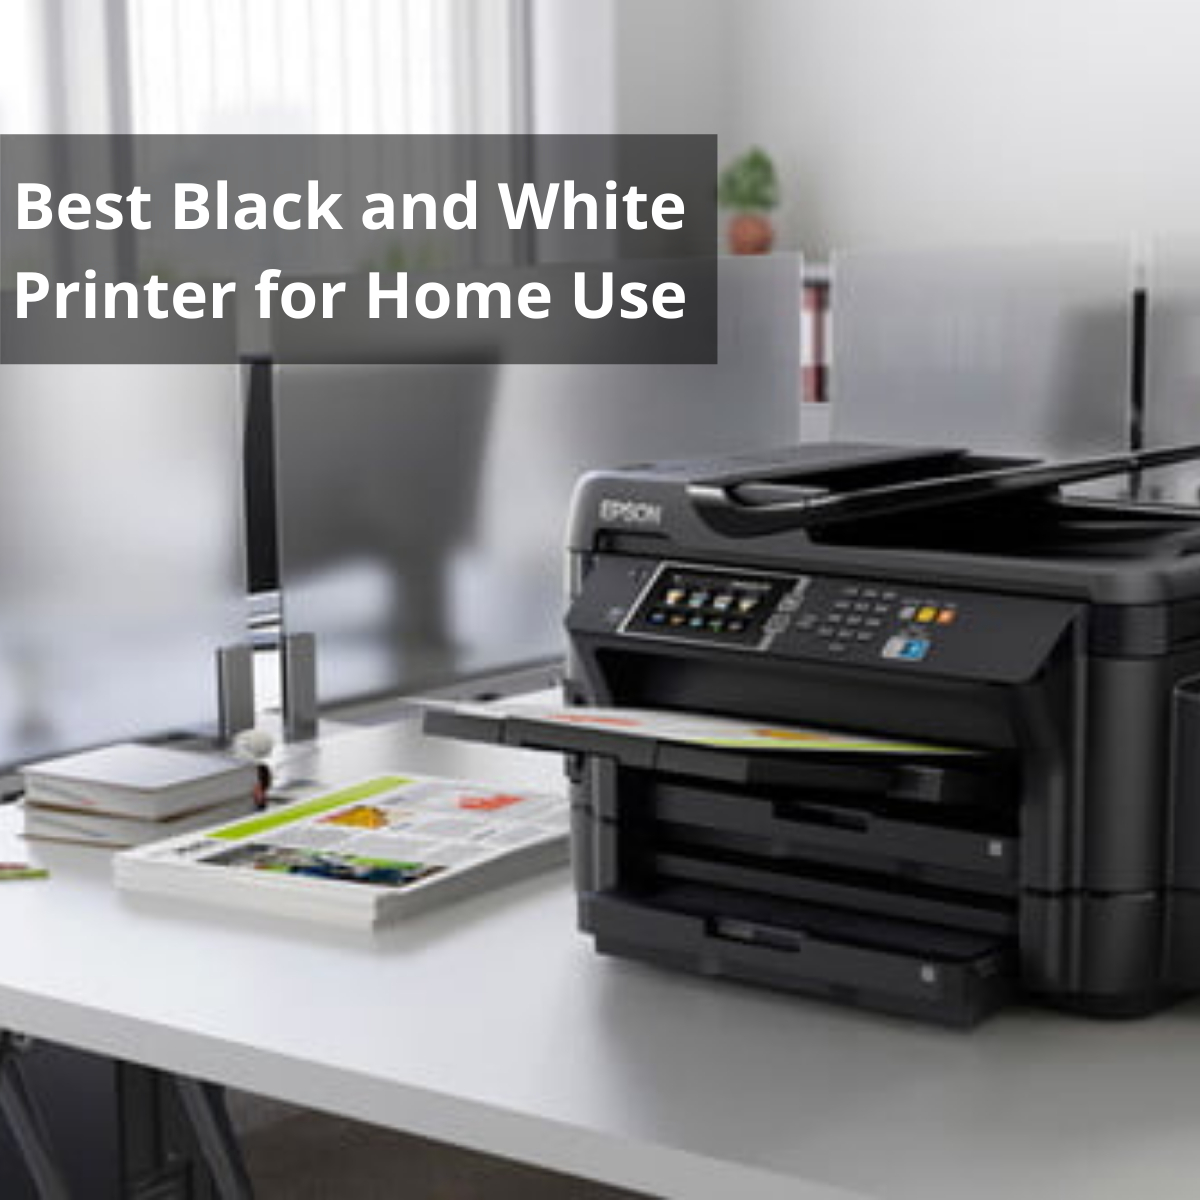 Best Black and white printer for home use